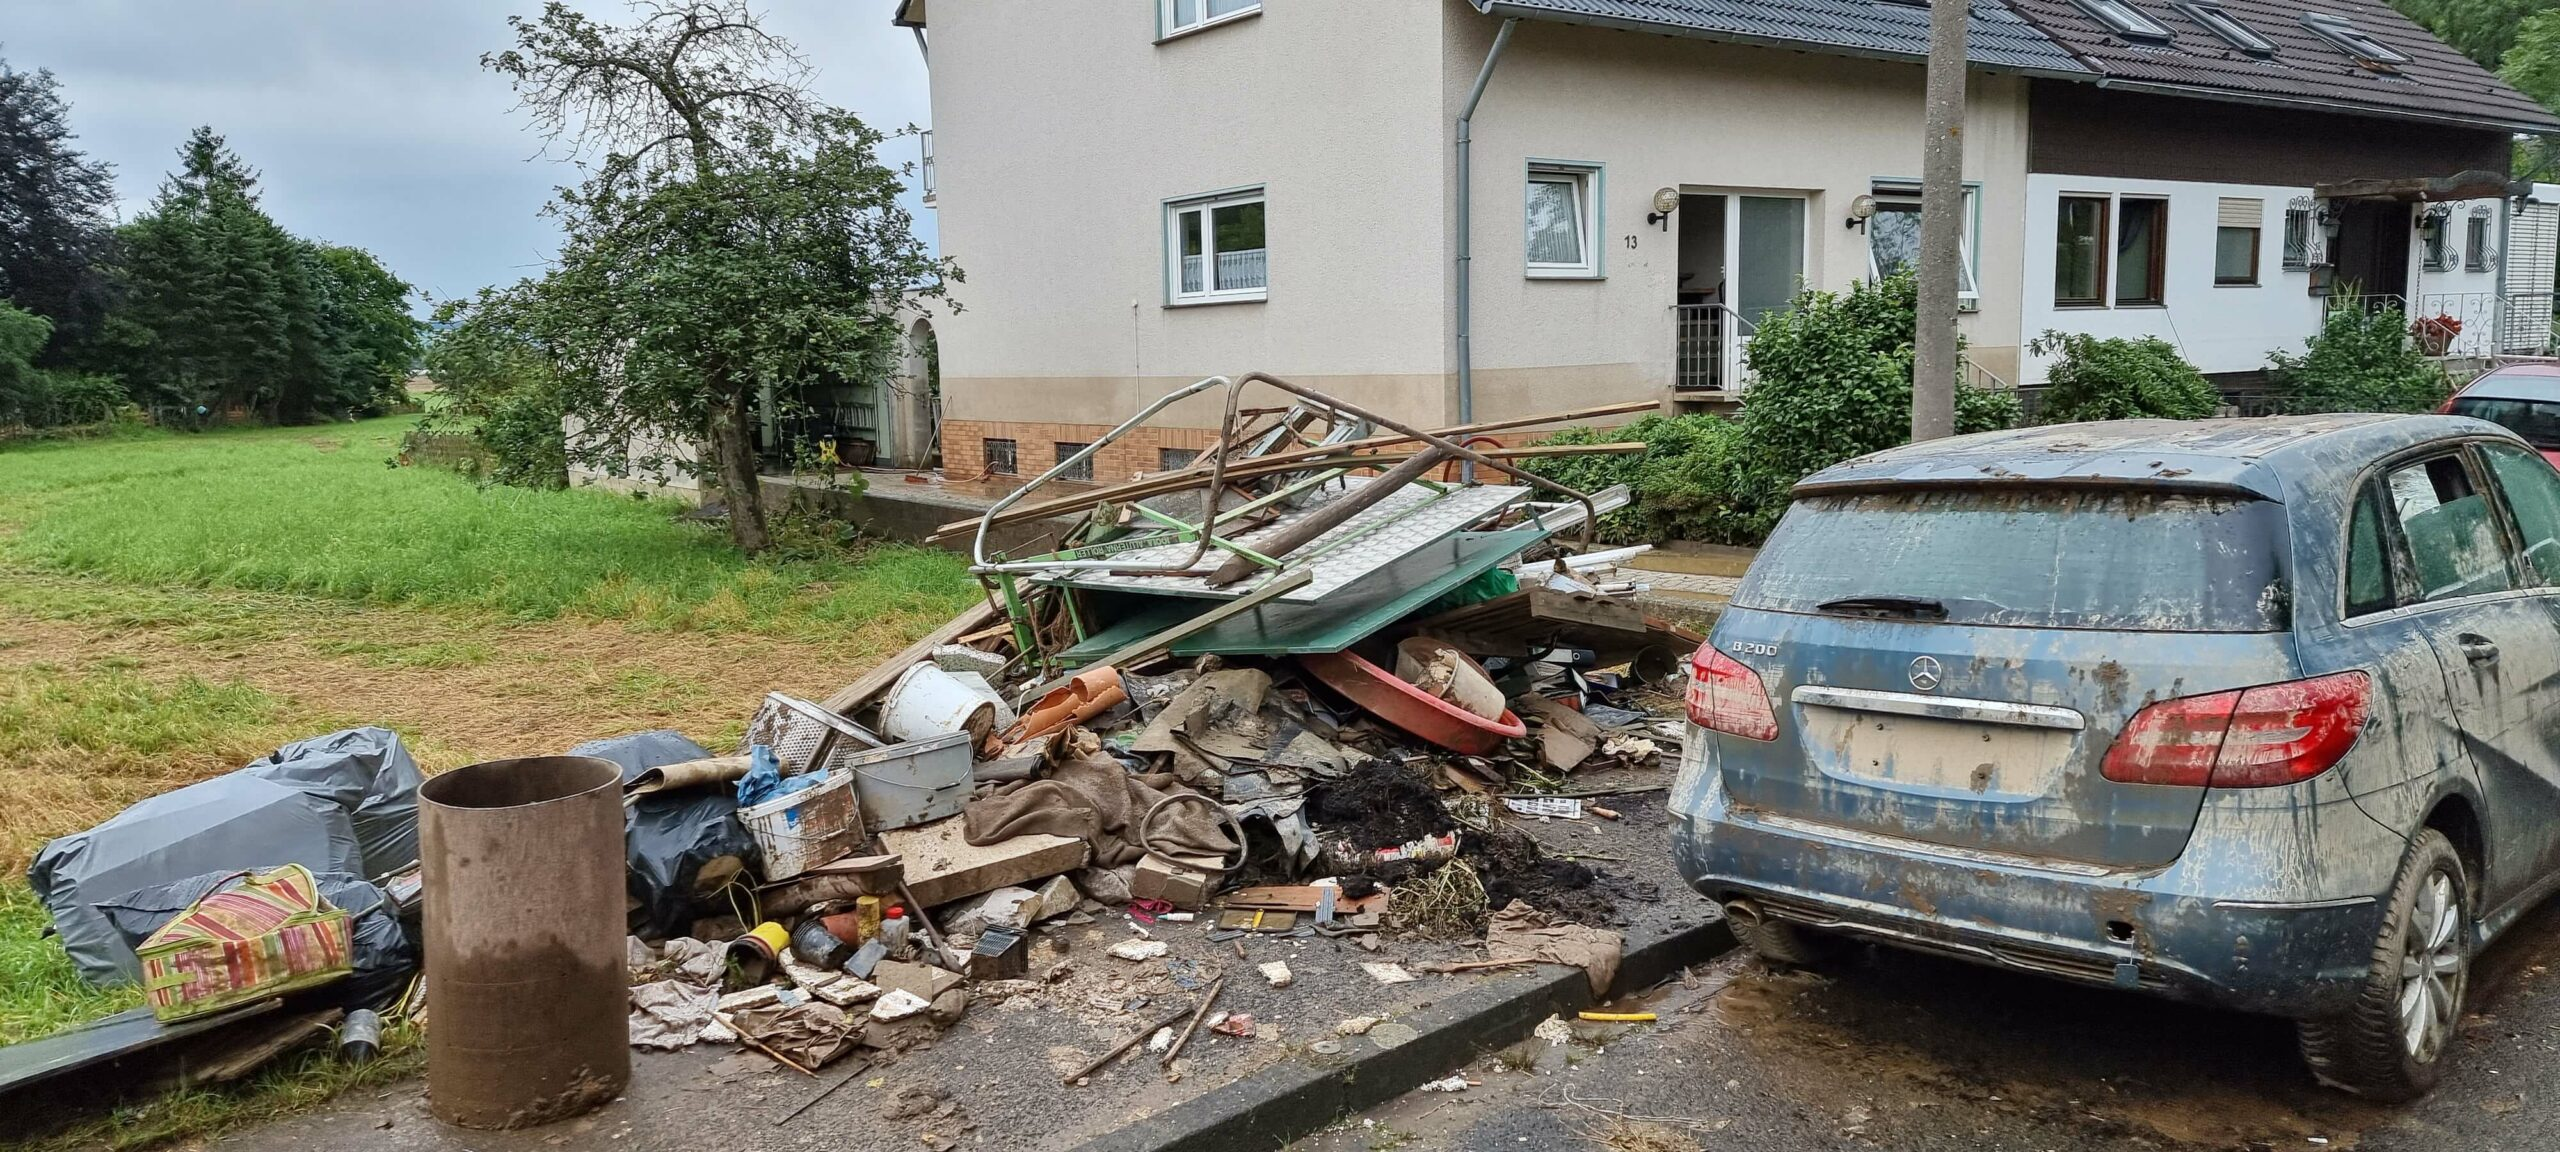 Destruction caused by flooding.